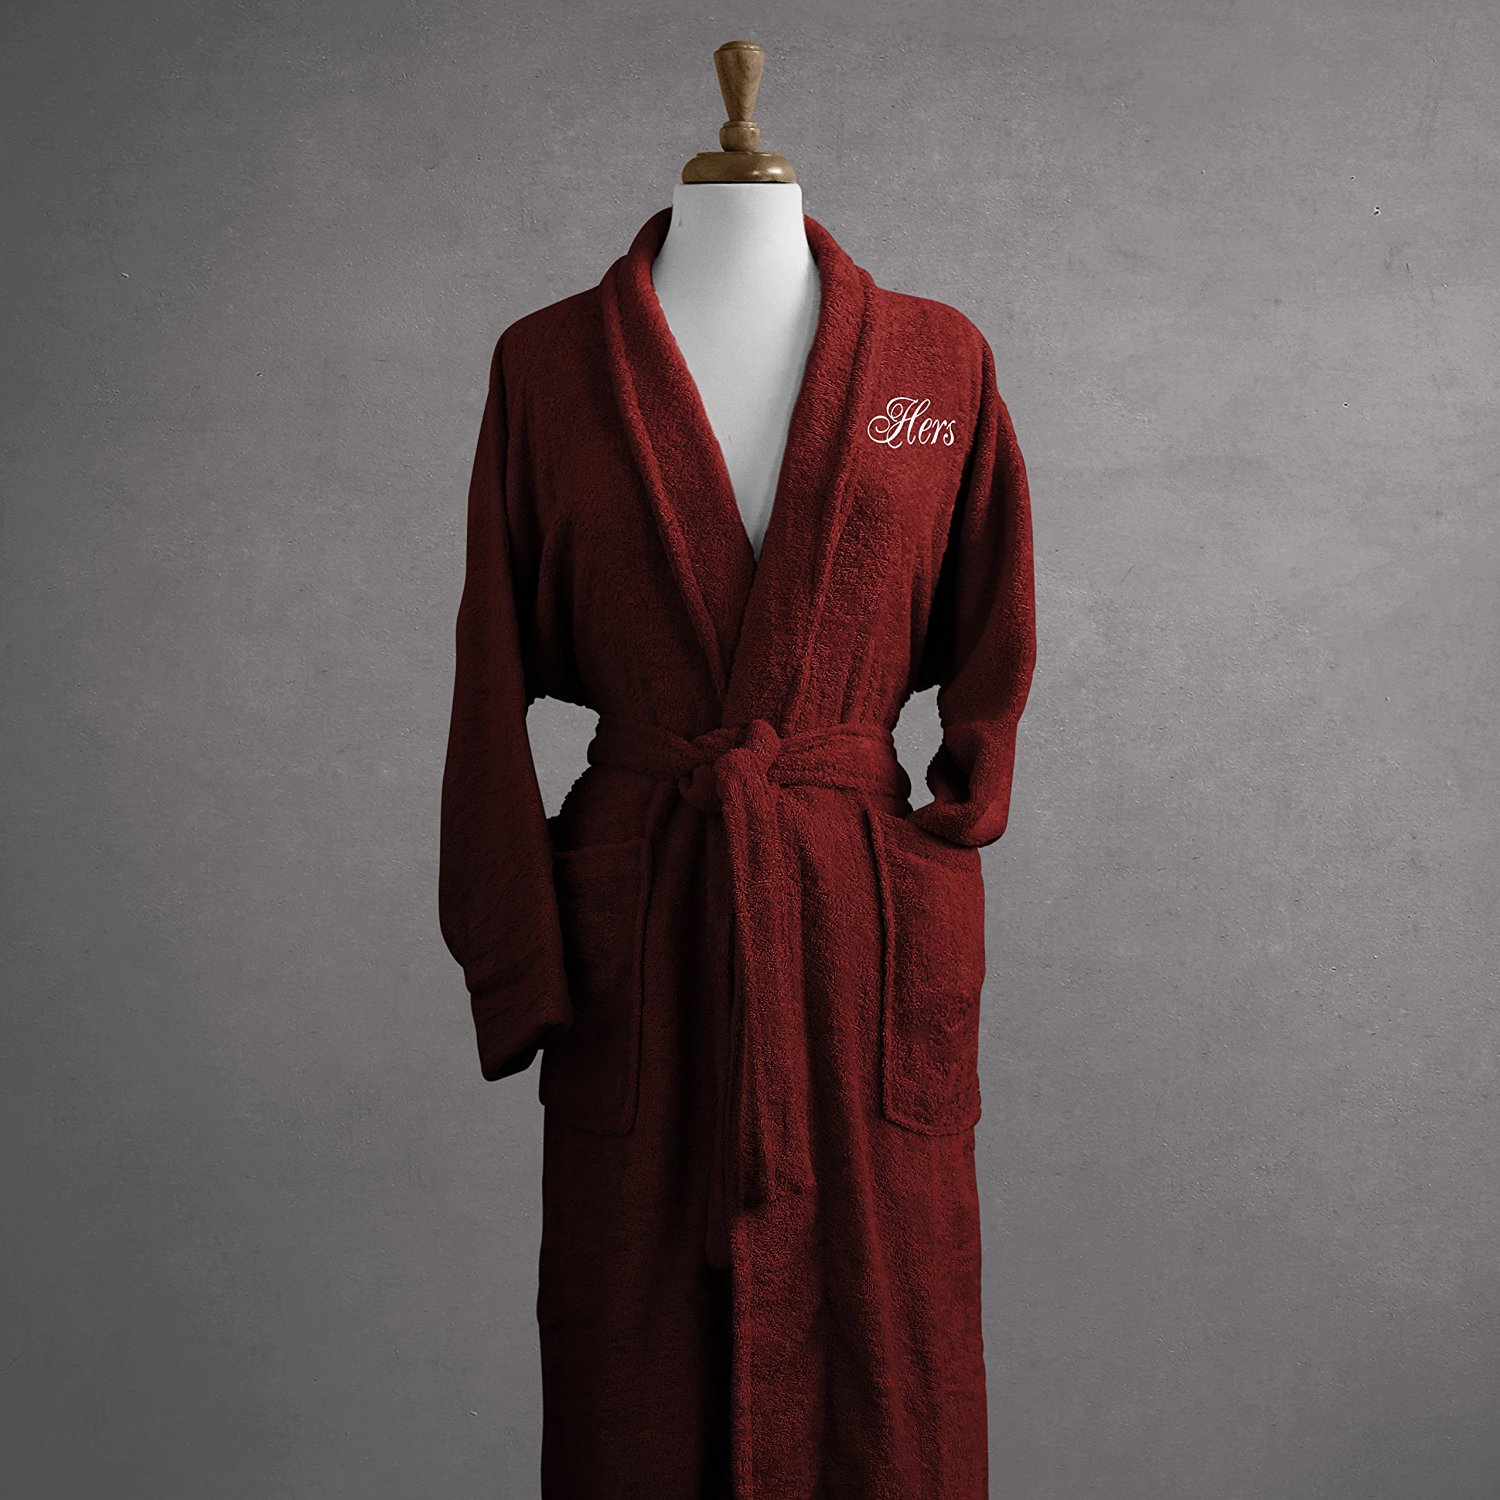 88f010208c Luxor Linens Salerno Egyptian Cotton His   Hers Terry Robe - Small -  Burgundy - Perfect Wedding Gift! - Hers